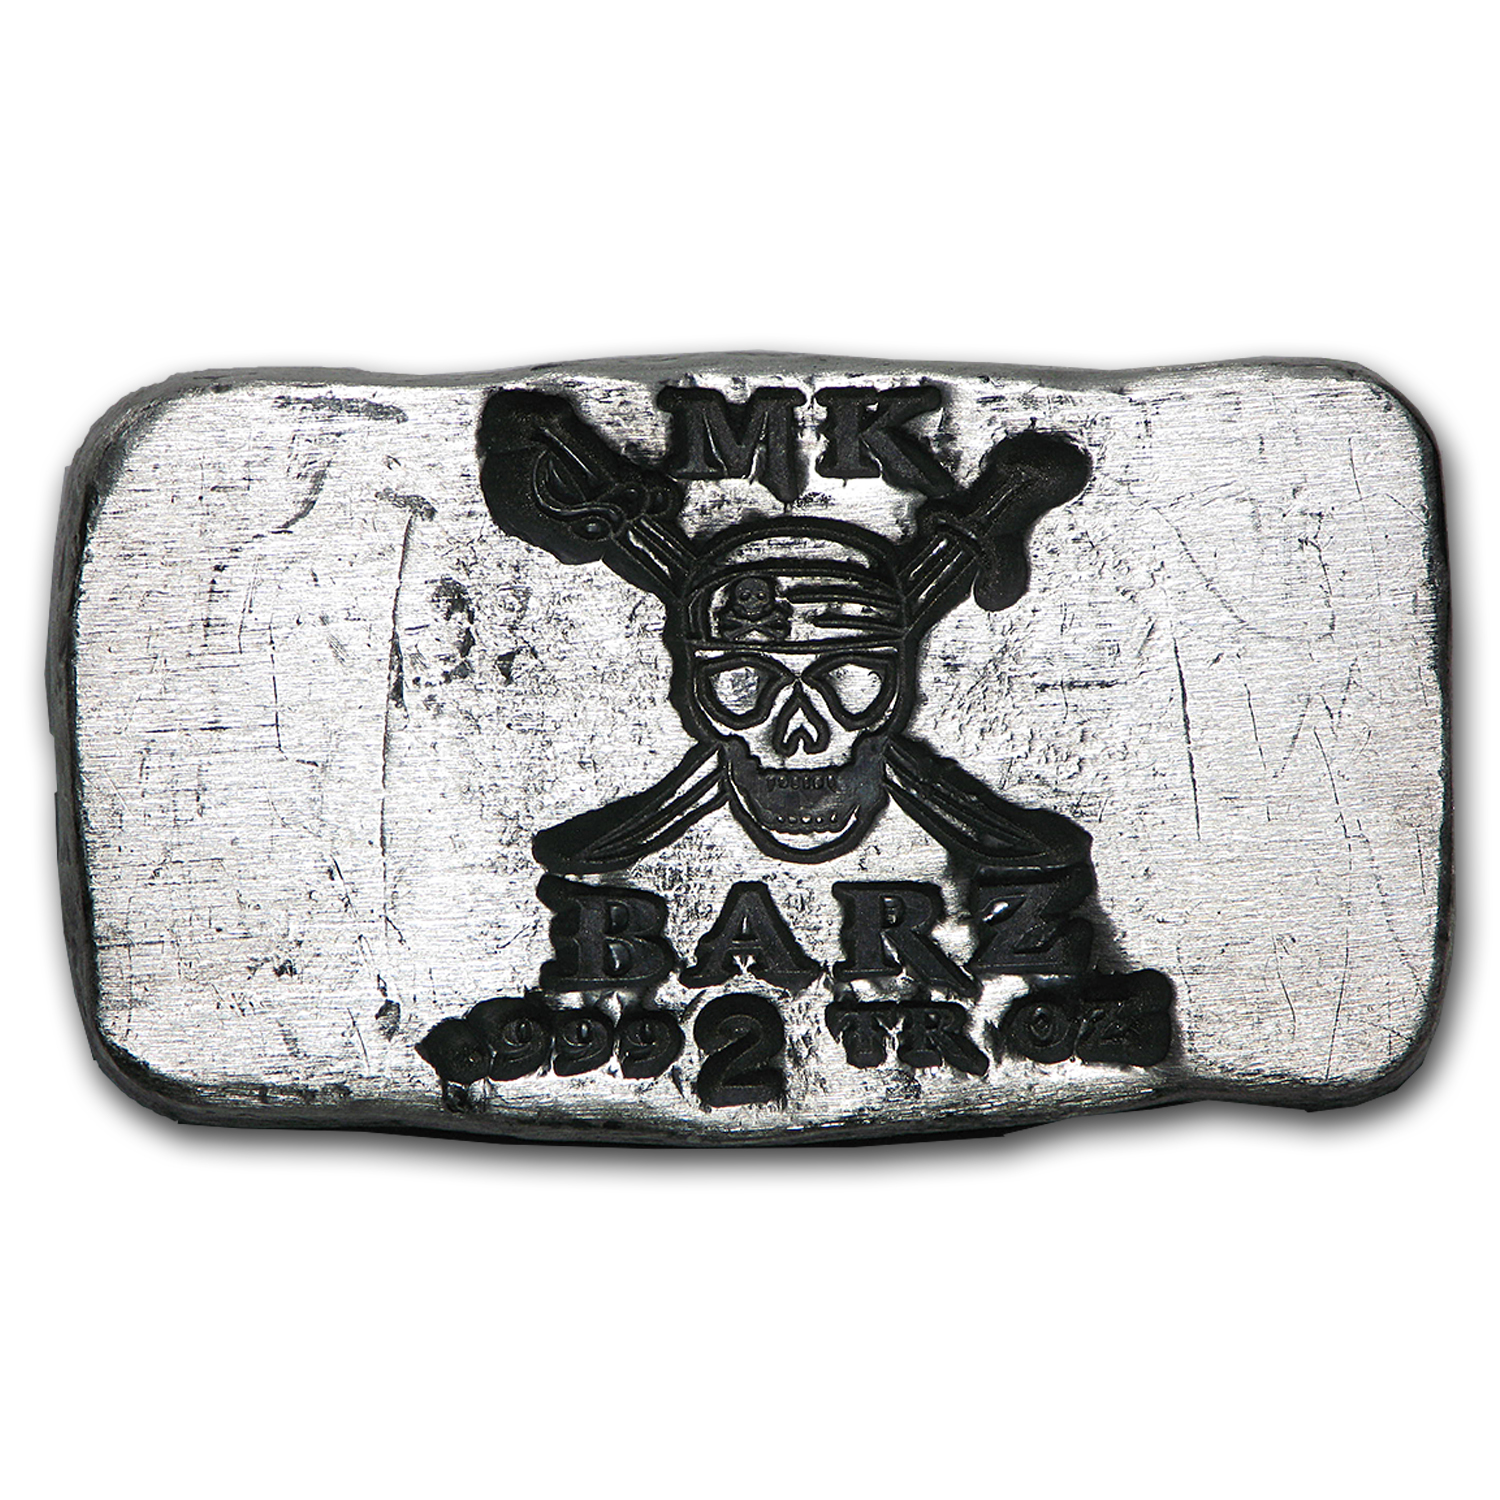 2 oz Silver Bar - MK Barz (Limited Edition, Pirate Skull)